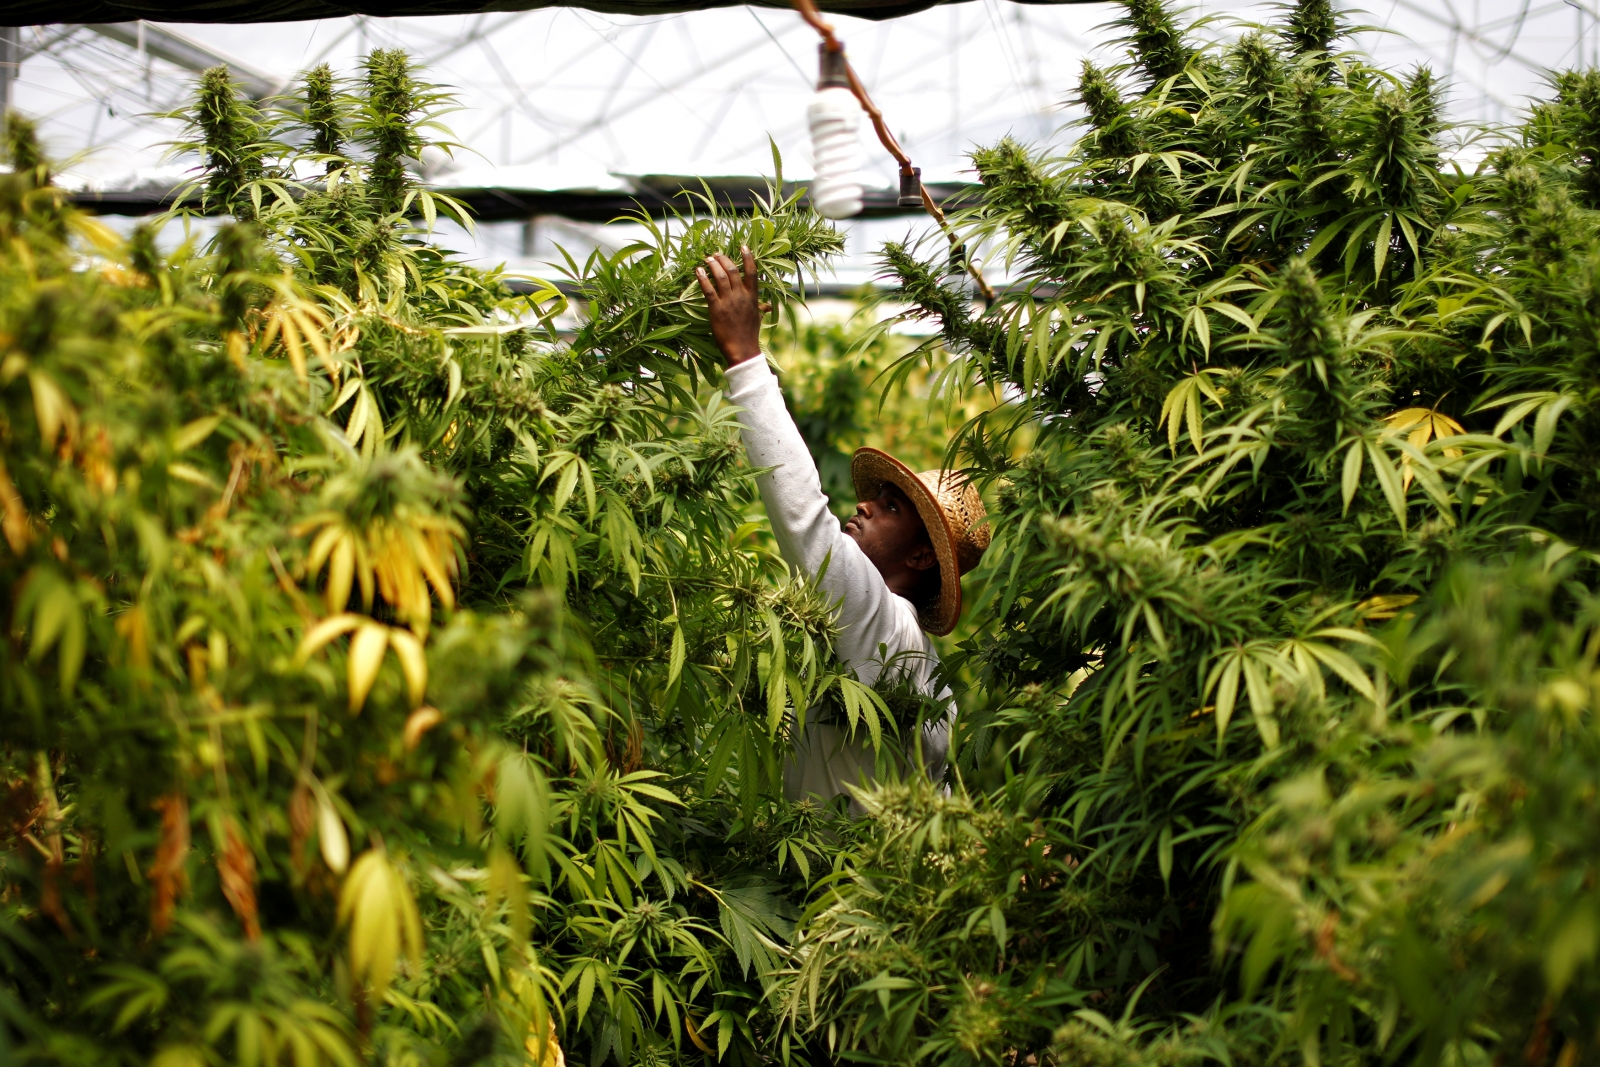 A worker harvests cannabis plants